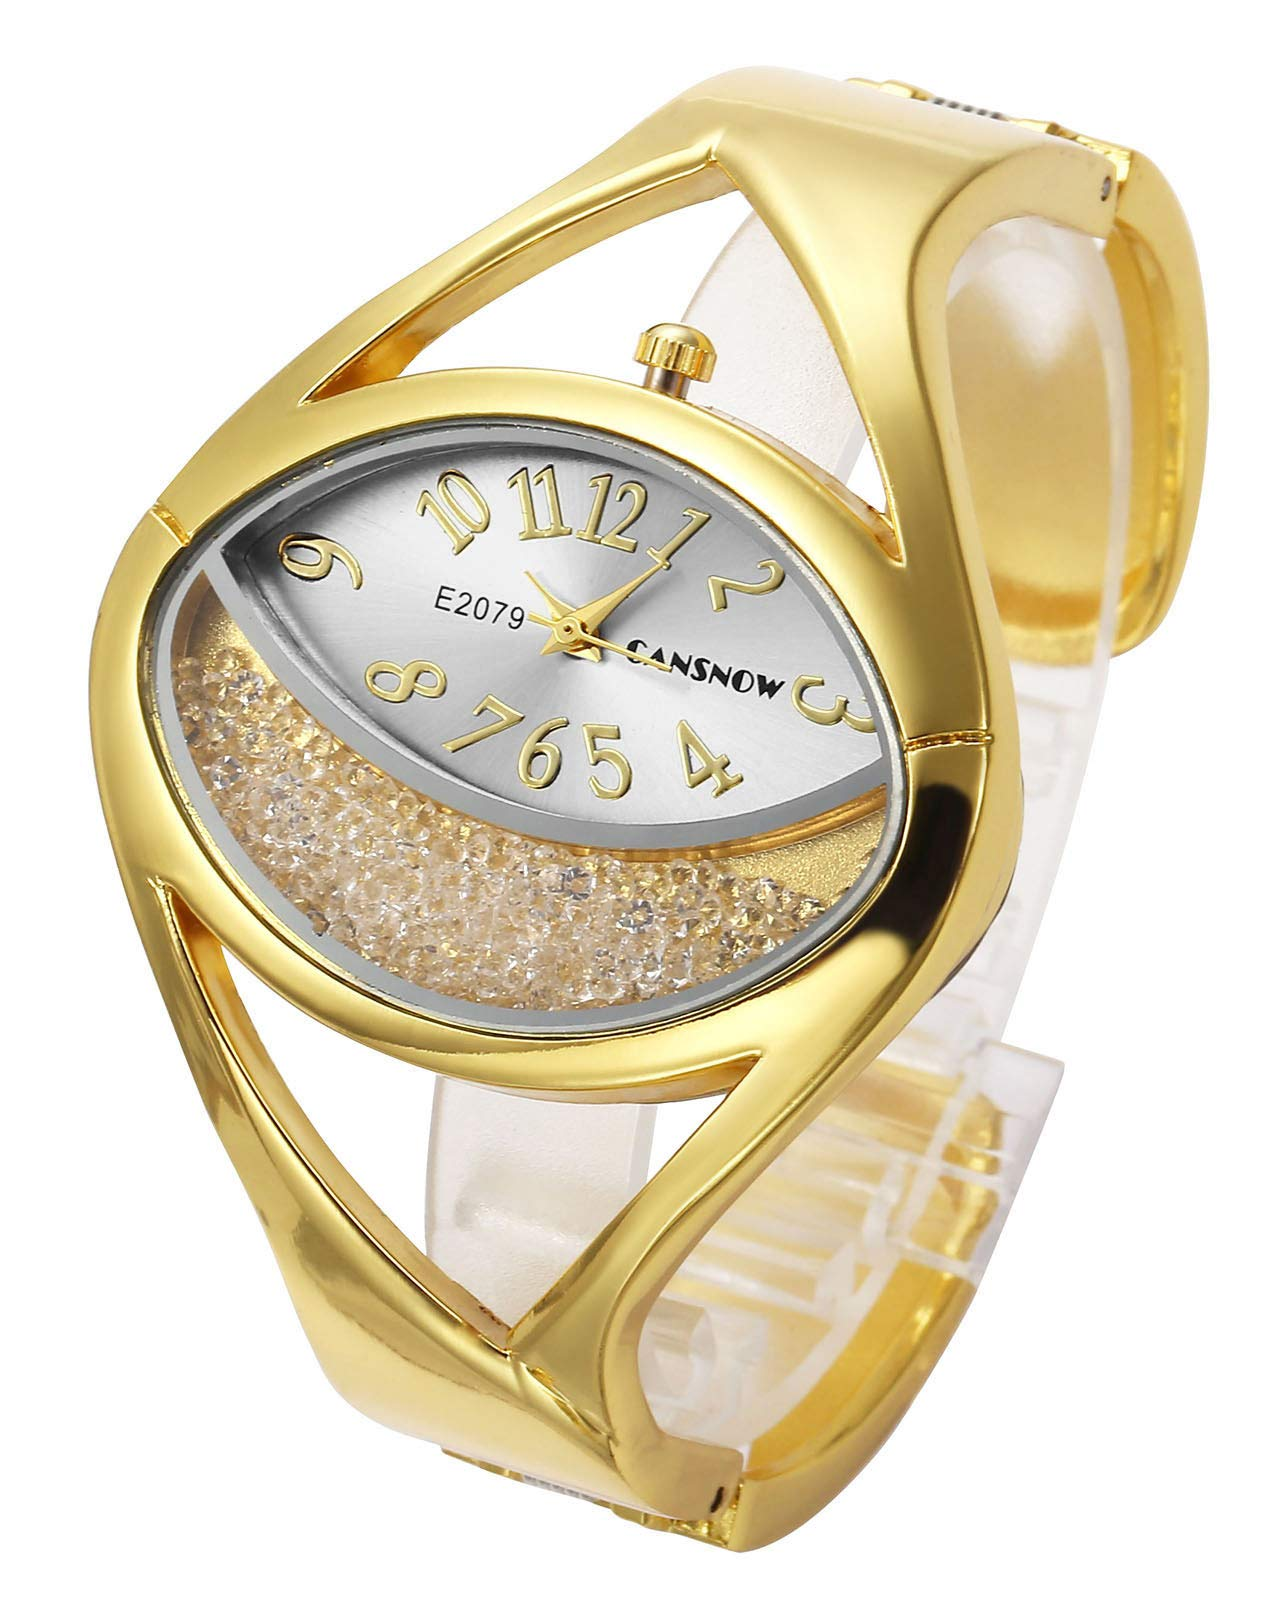 Top Plaza Women Ladies Casual Luxury Gold Silver Tone Alloy Analog Quartz Bracelet Watch Oval Case Rhinestones Decorated Elegant Dress Bangle Cuff Wristwatch-Gold #1